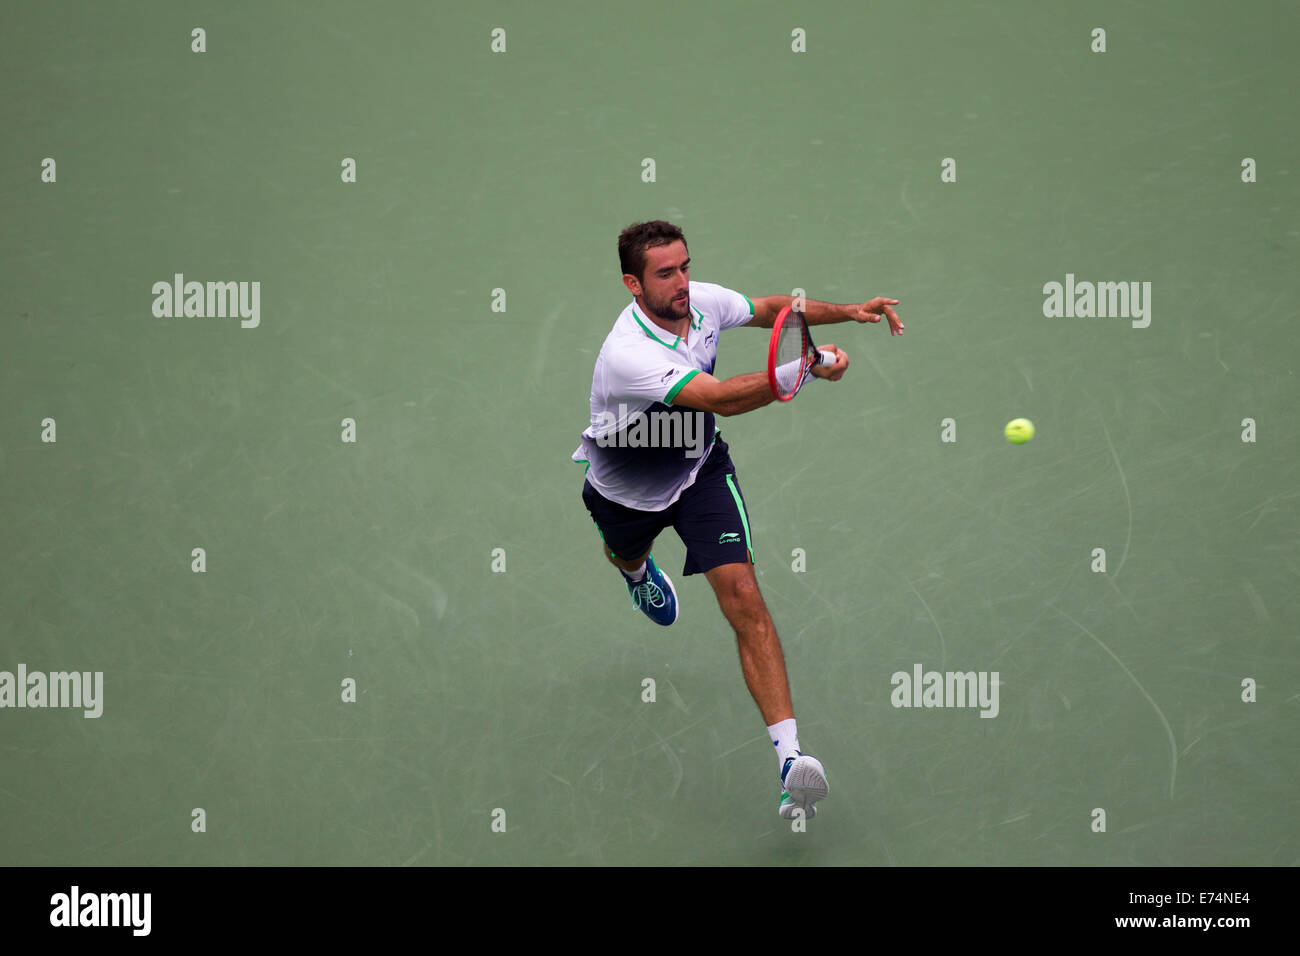 New York, US. 6th Sep, 2014. Marin Cilic (CRO) defeated Roger Federer (SUI in the Men's Semi-Final. Credit: - Stock Image